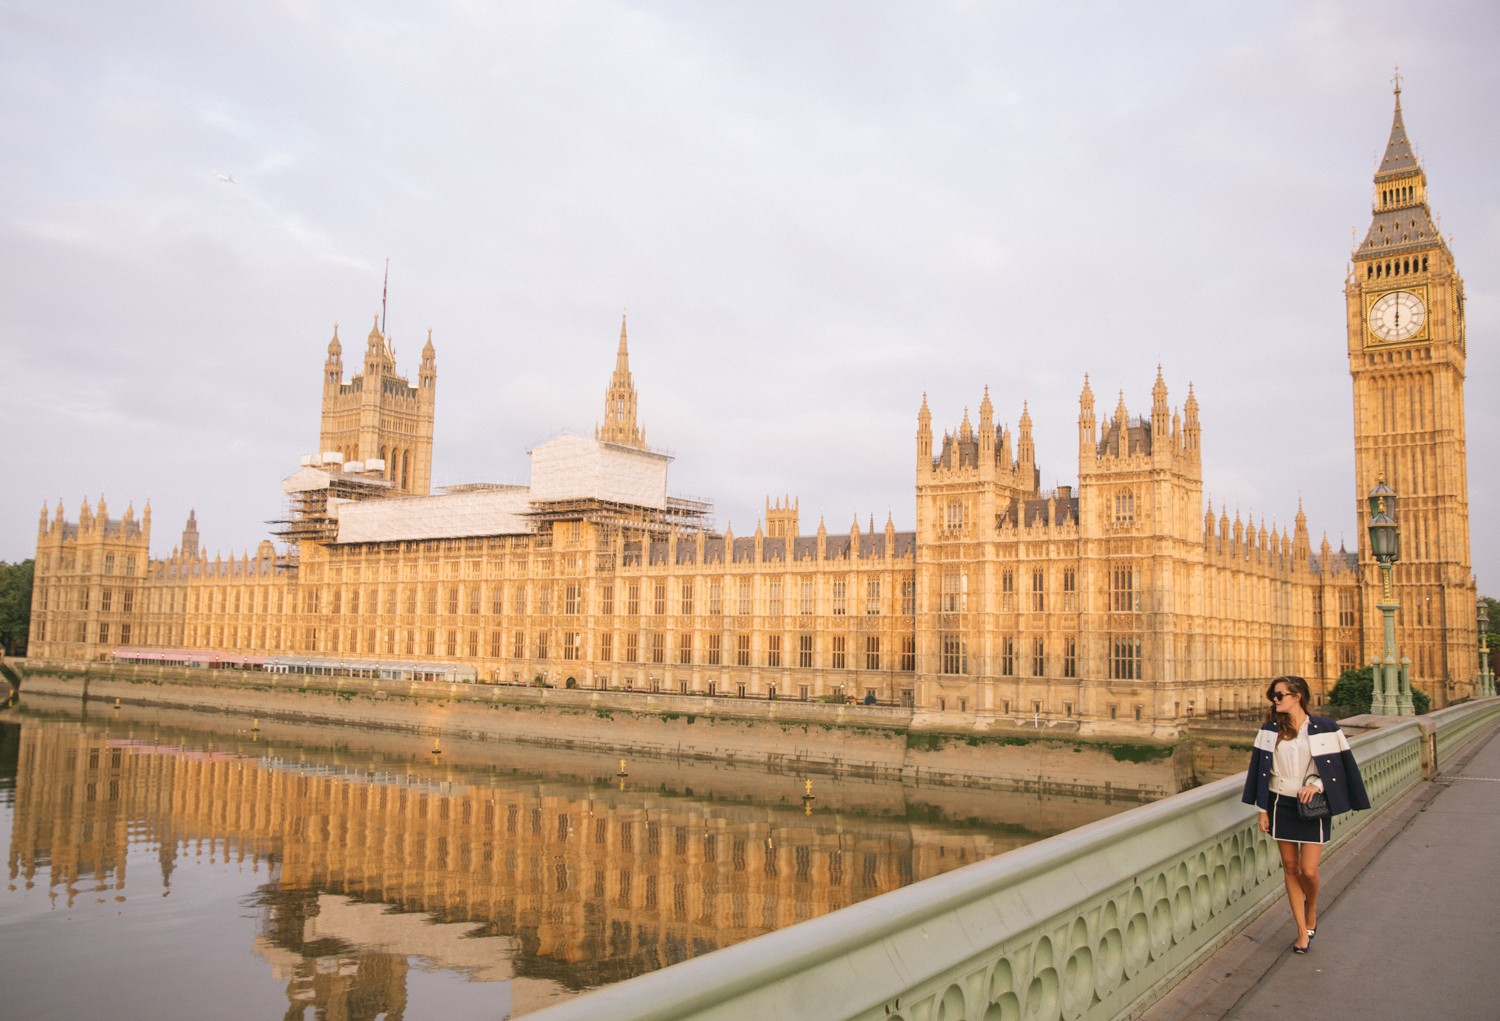 Houses of Parliament at sunrise, London